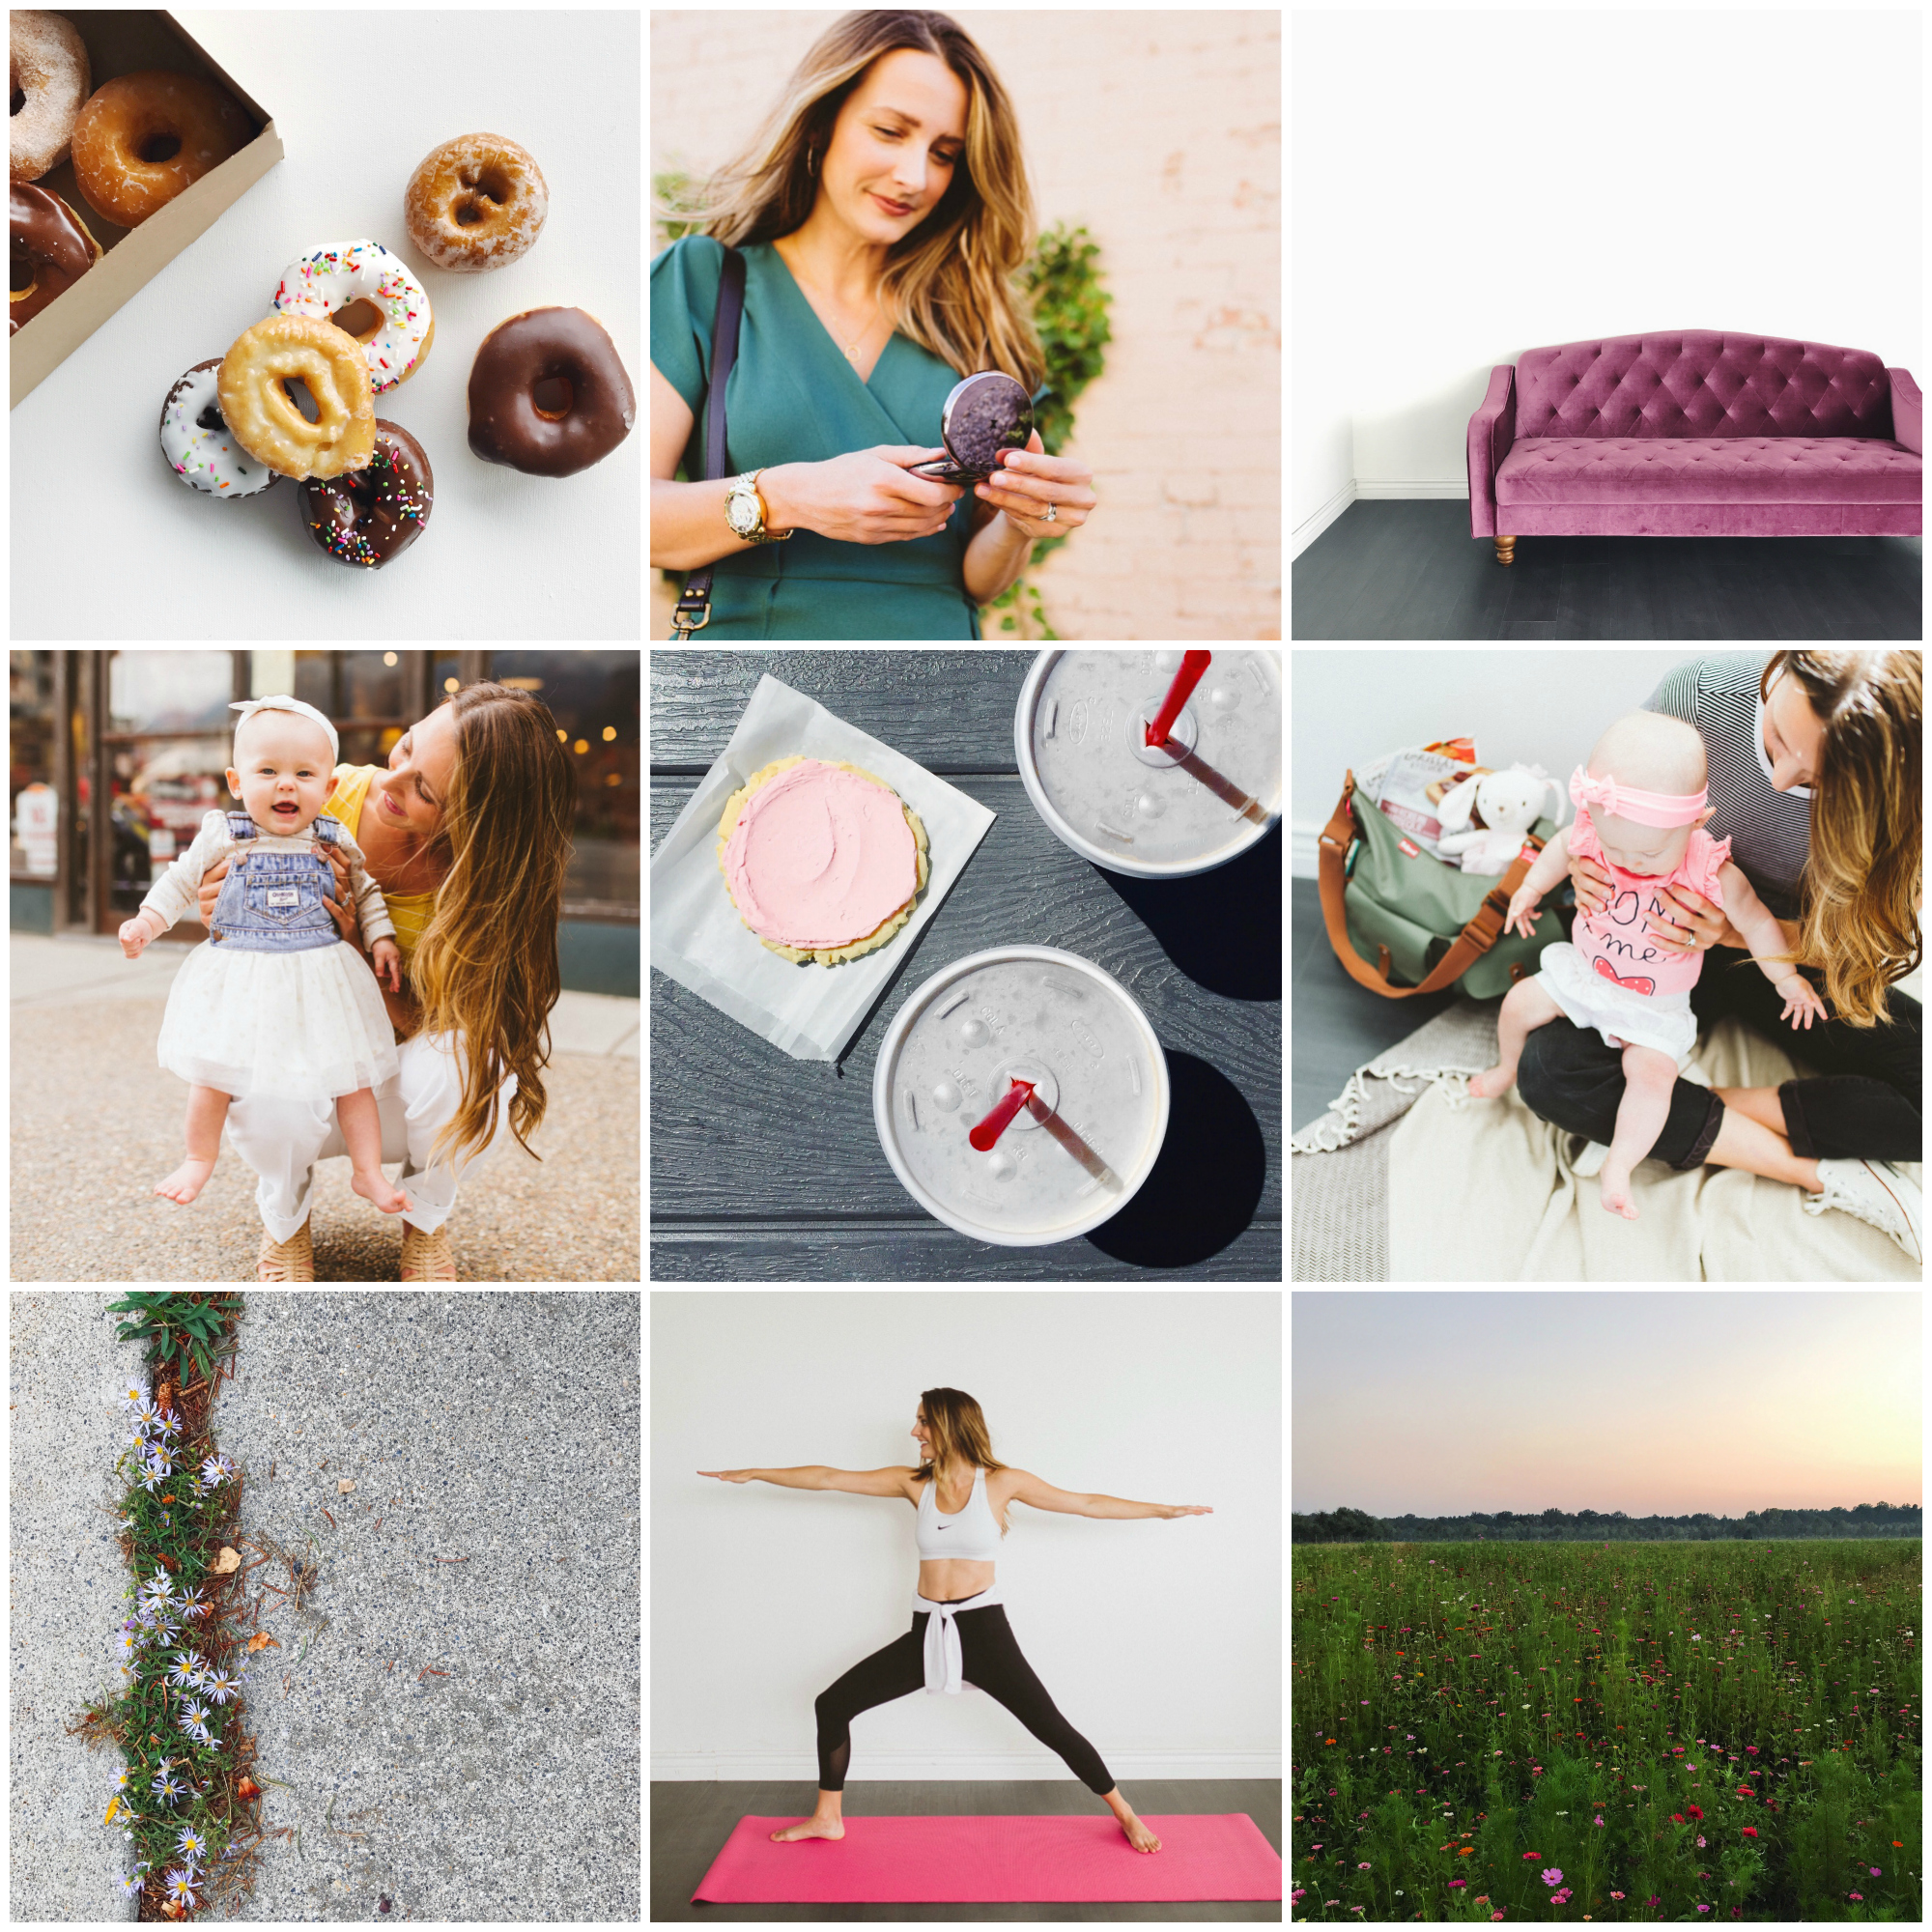 insta life | instagram roundup + coordinating links via Finding Beautiful Truth